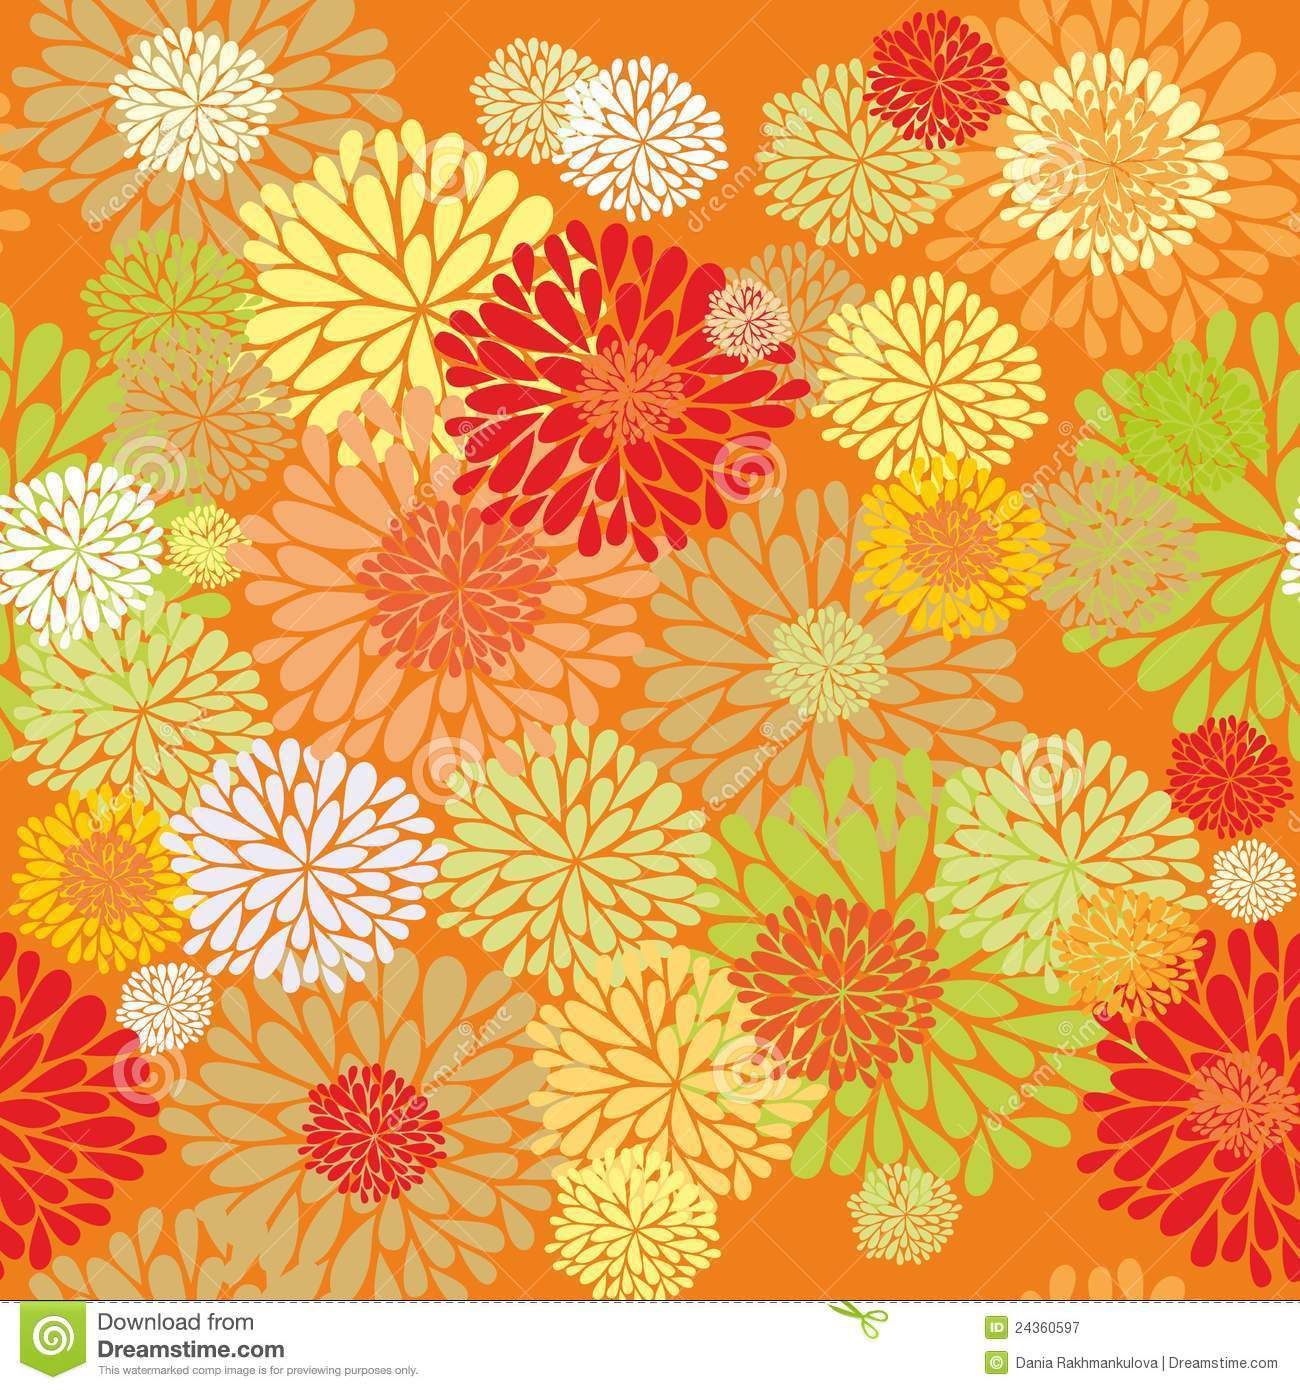 Floral Orange Pattern Royalty Free Stock Photography - Image: 24360597